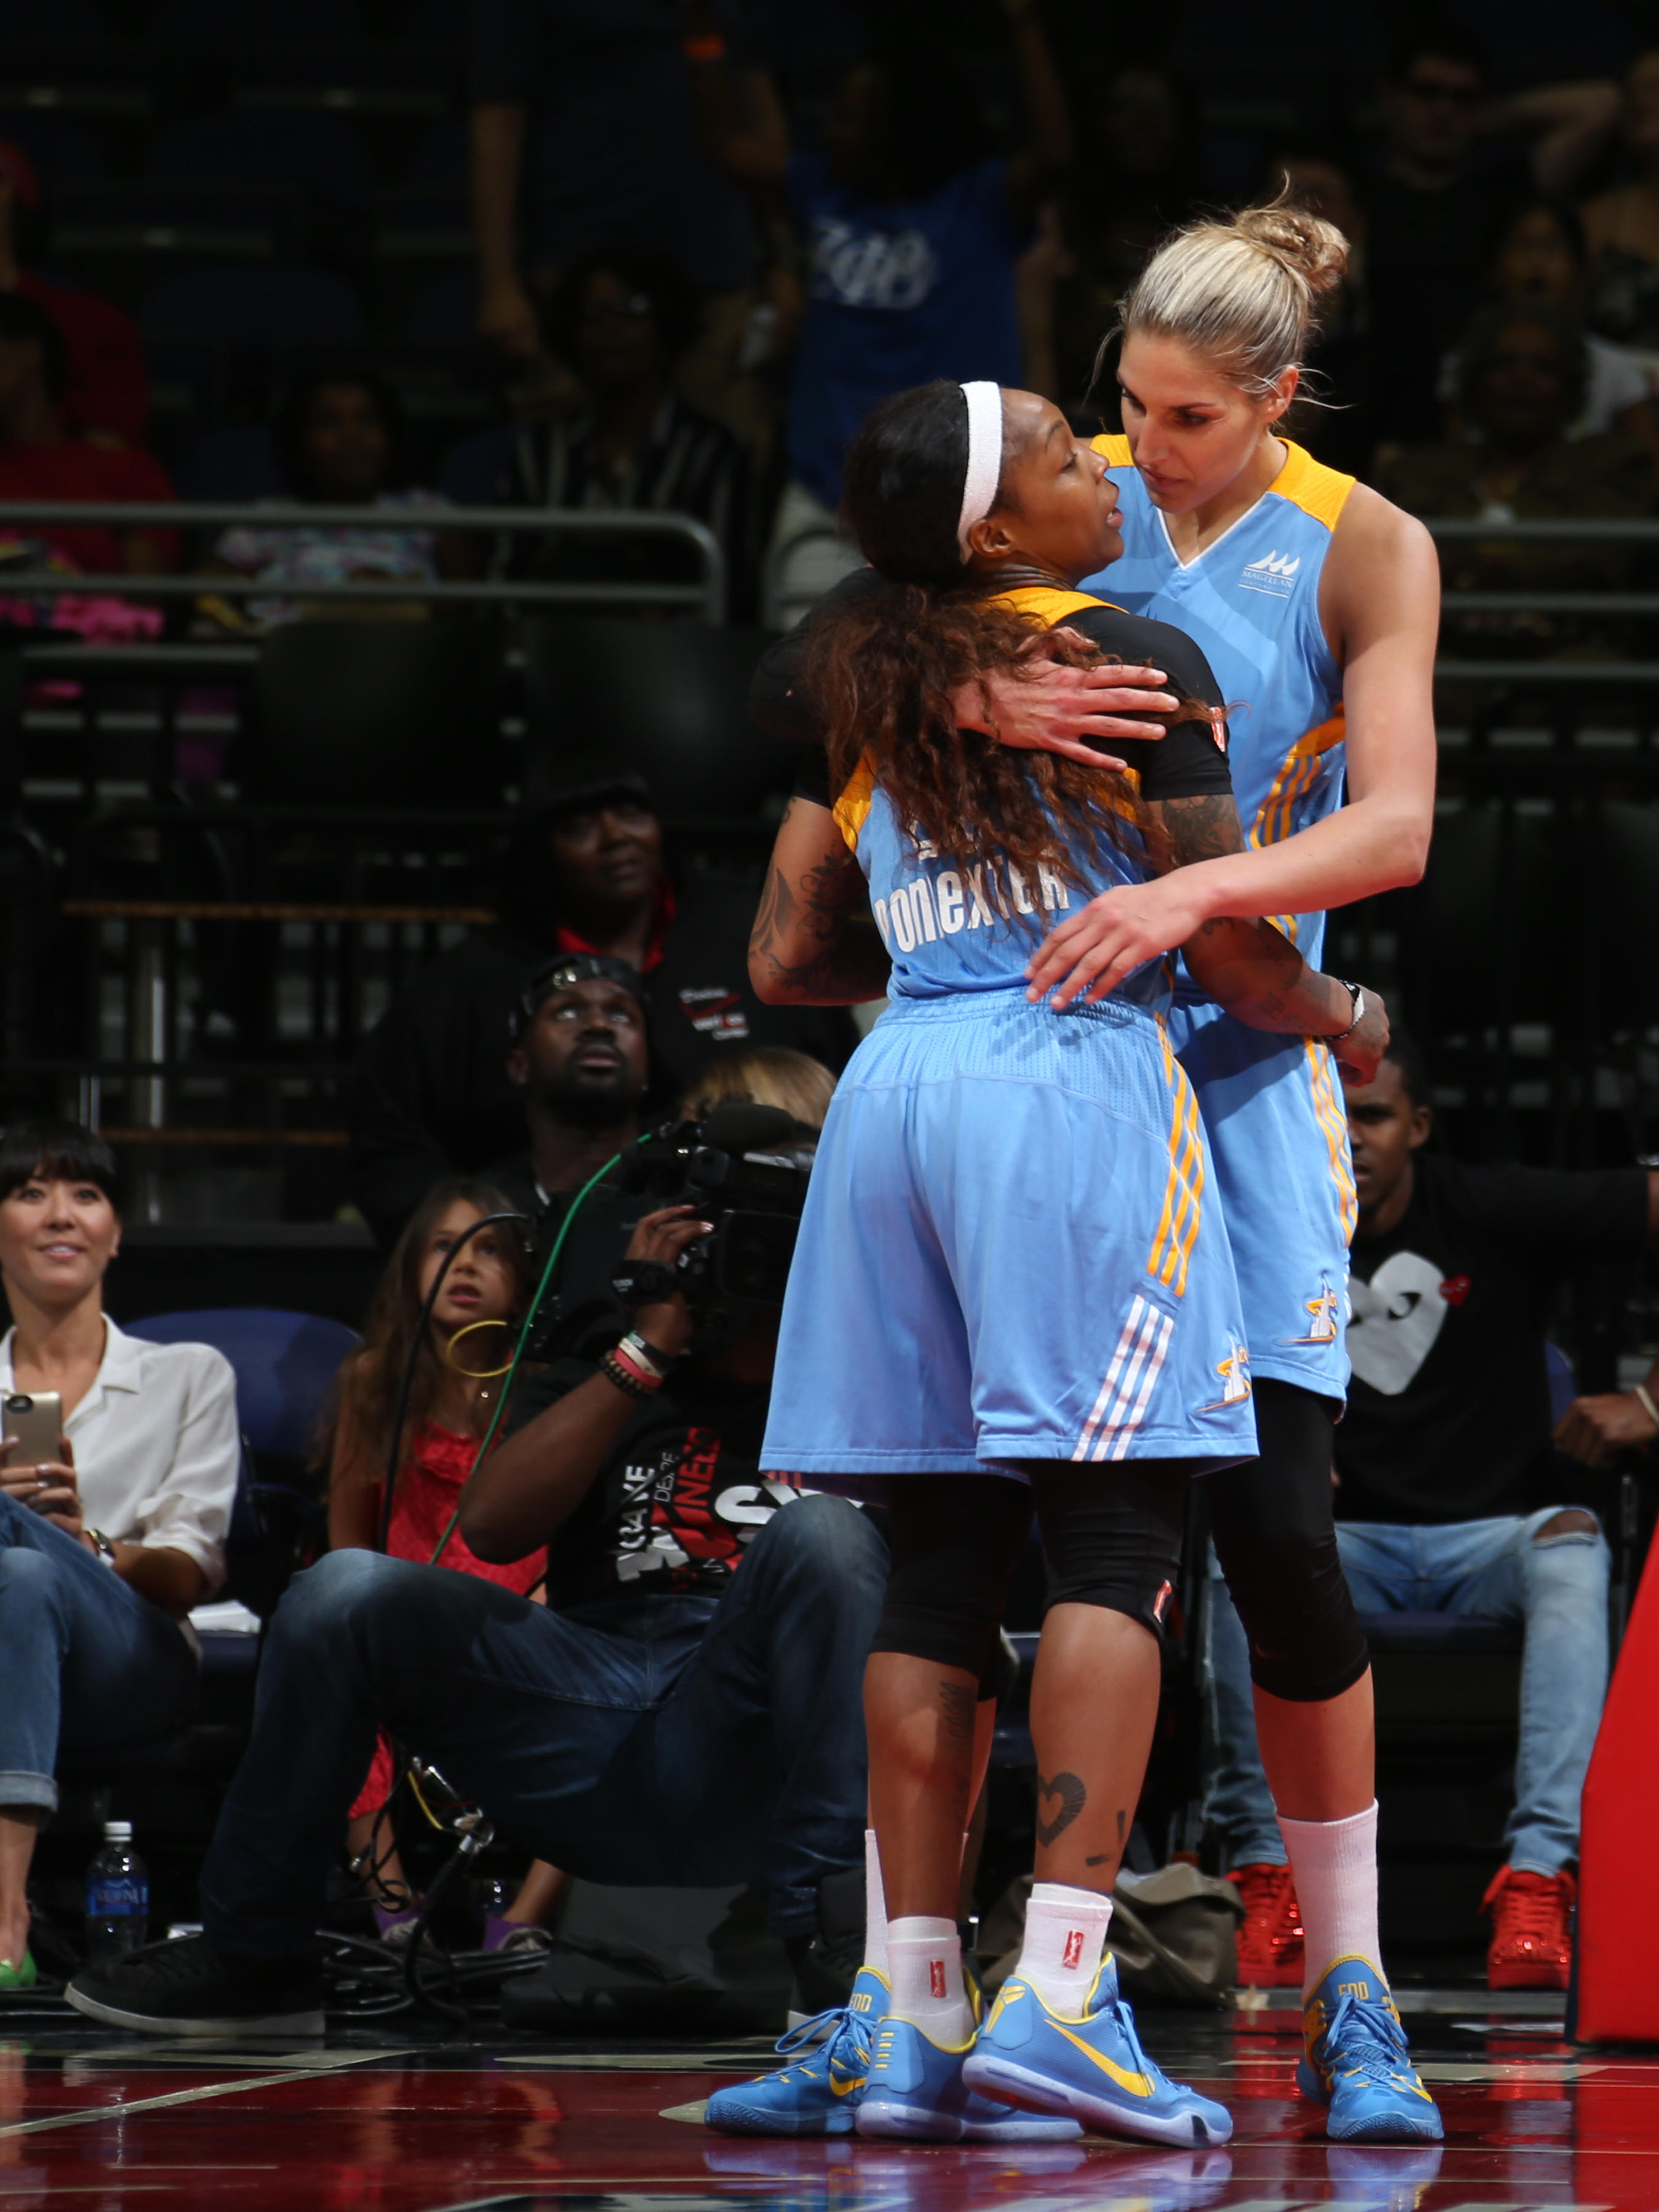 WASHINGTON, DC - AUGUST 23: Elena Delle Donne #11 of the Chicago Sky hugs Cappie Pondexter #23 of the Chicago Sky after a game winning play against the Washington Mystics on August 23, 2015 at the Verizon Center in Washington, DC. (Photo by Ned Dishman/NB